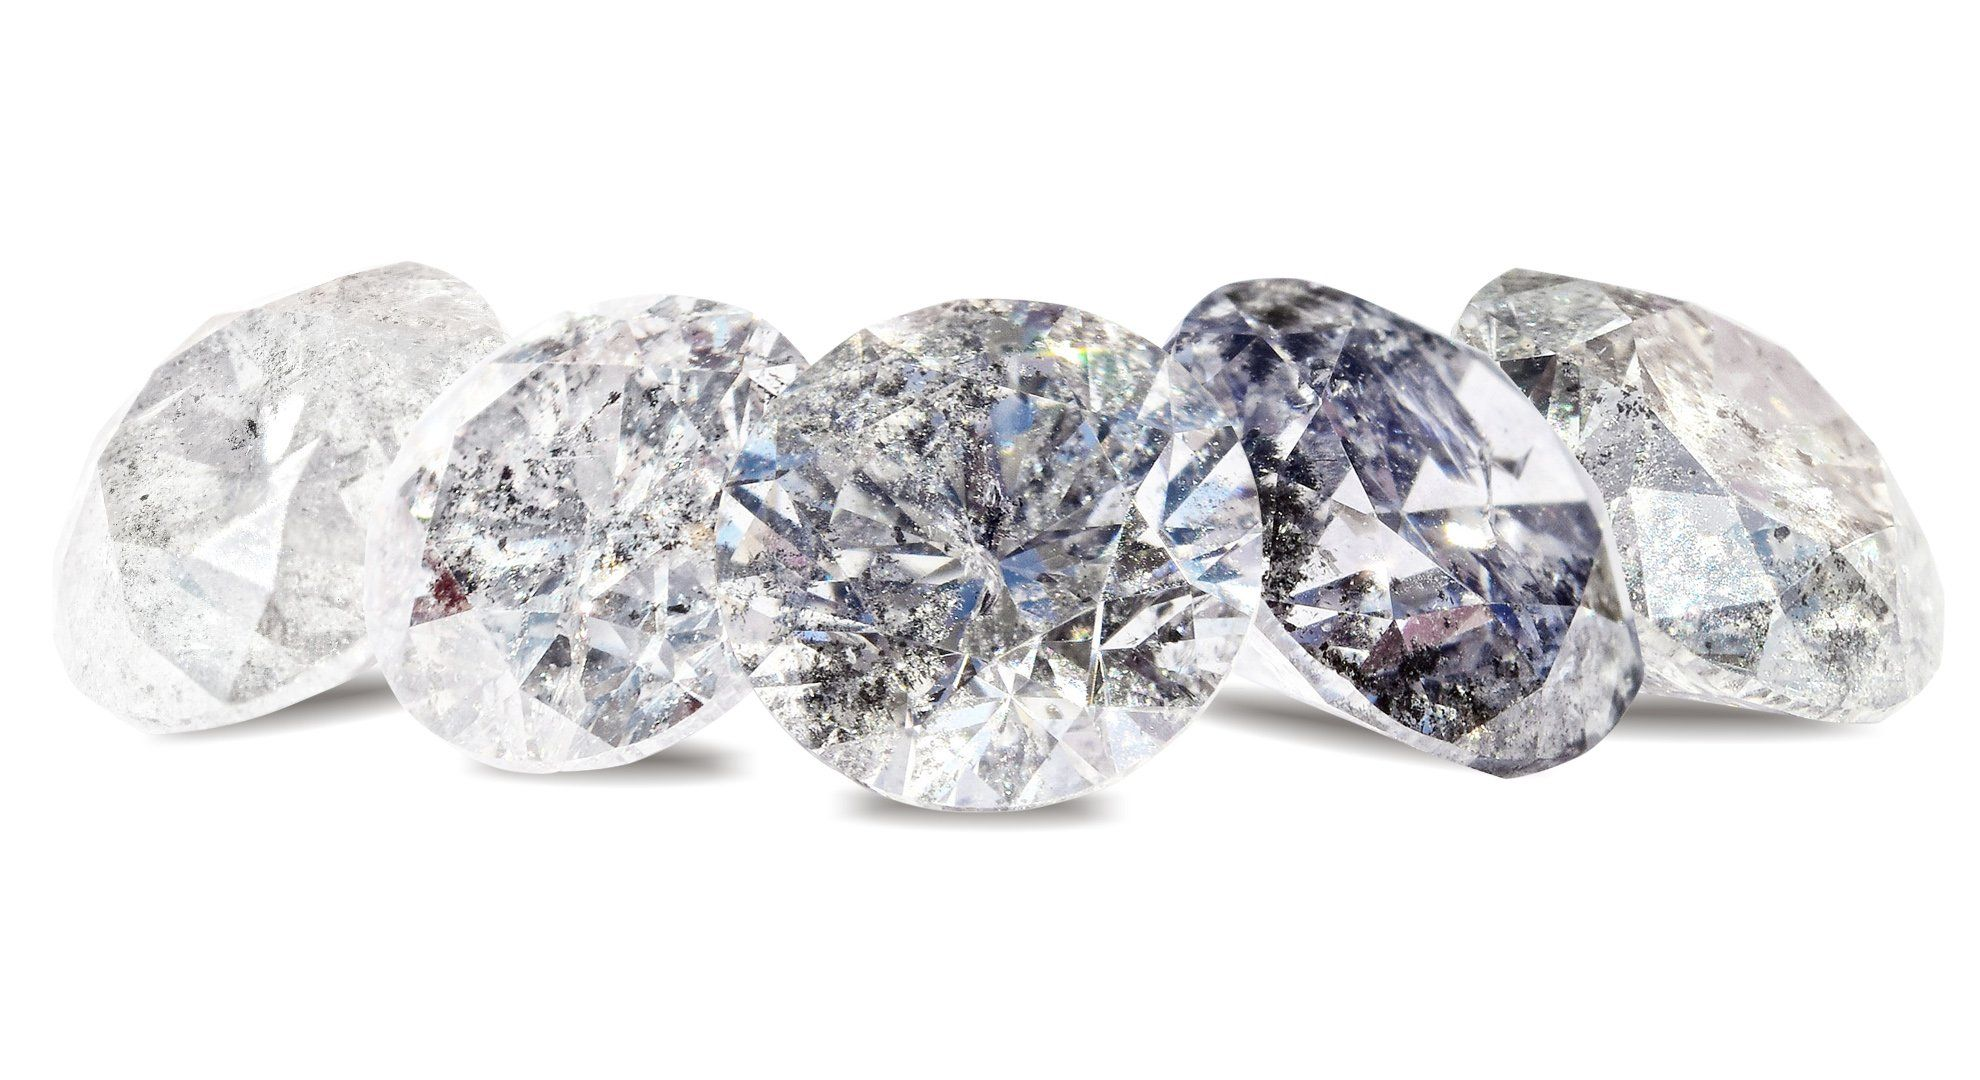 Responsibly sourced and traceable cut diamonds